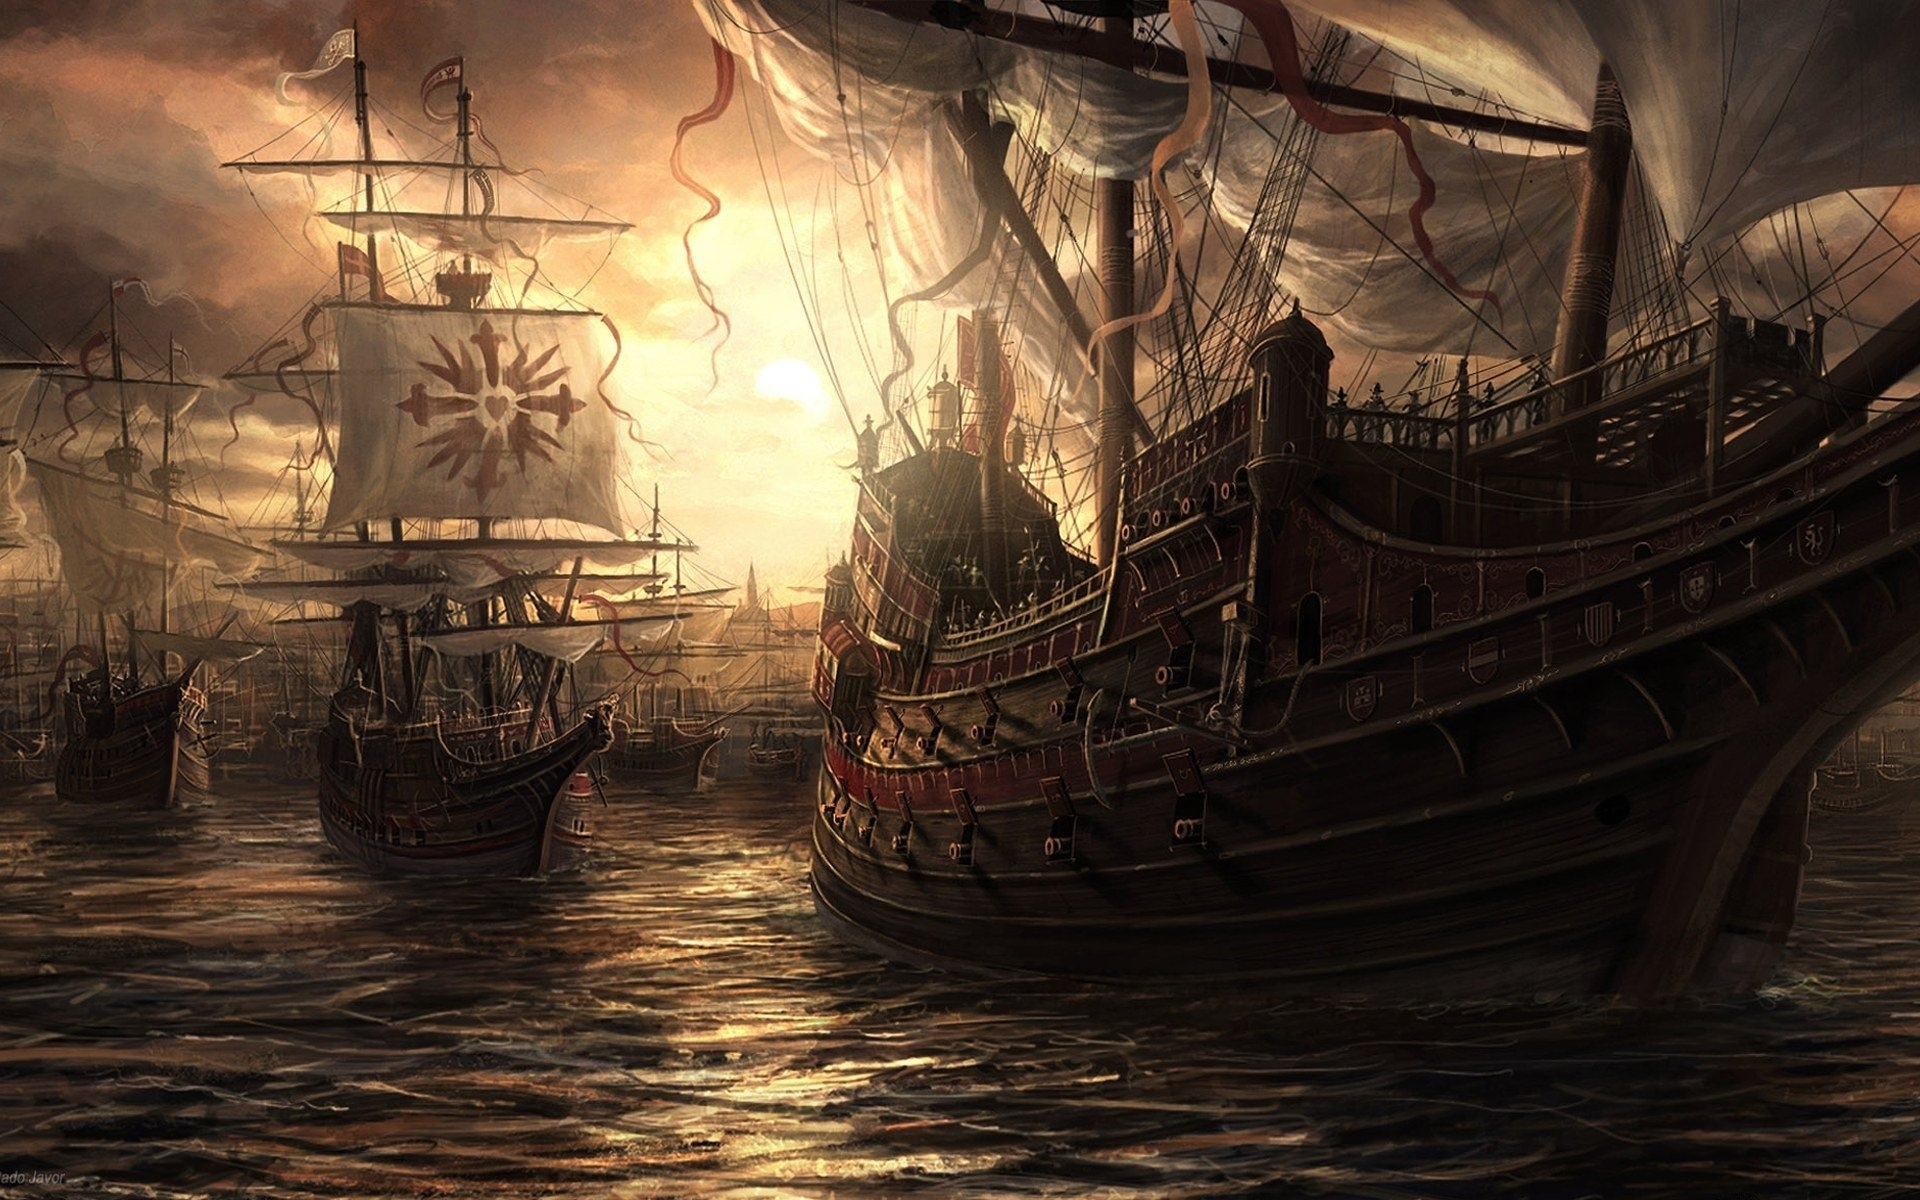 273 ship hd wallpapers | background images - wallpaper abyss